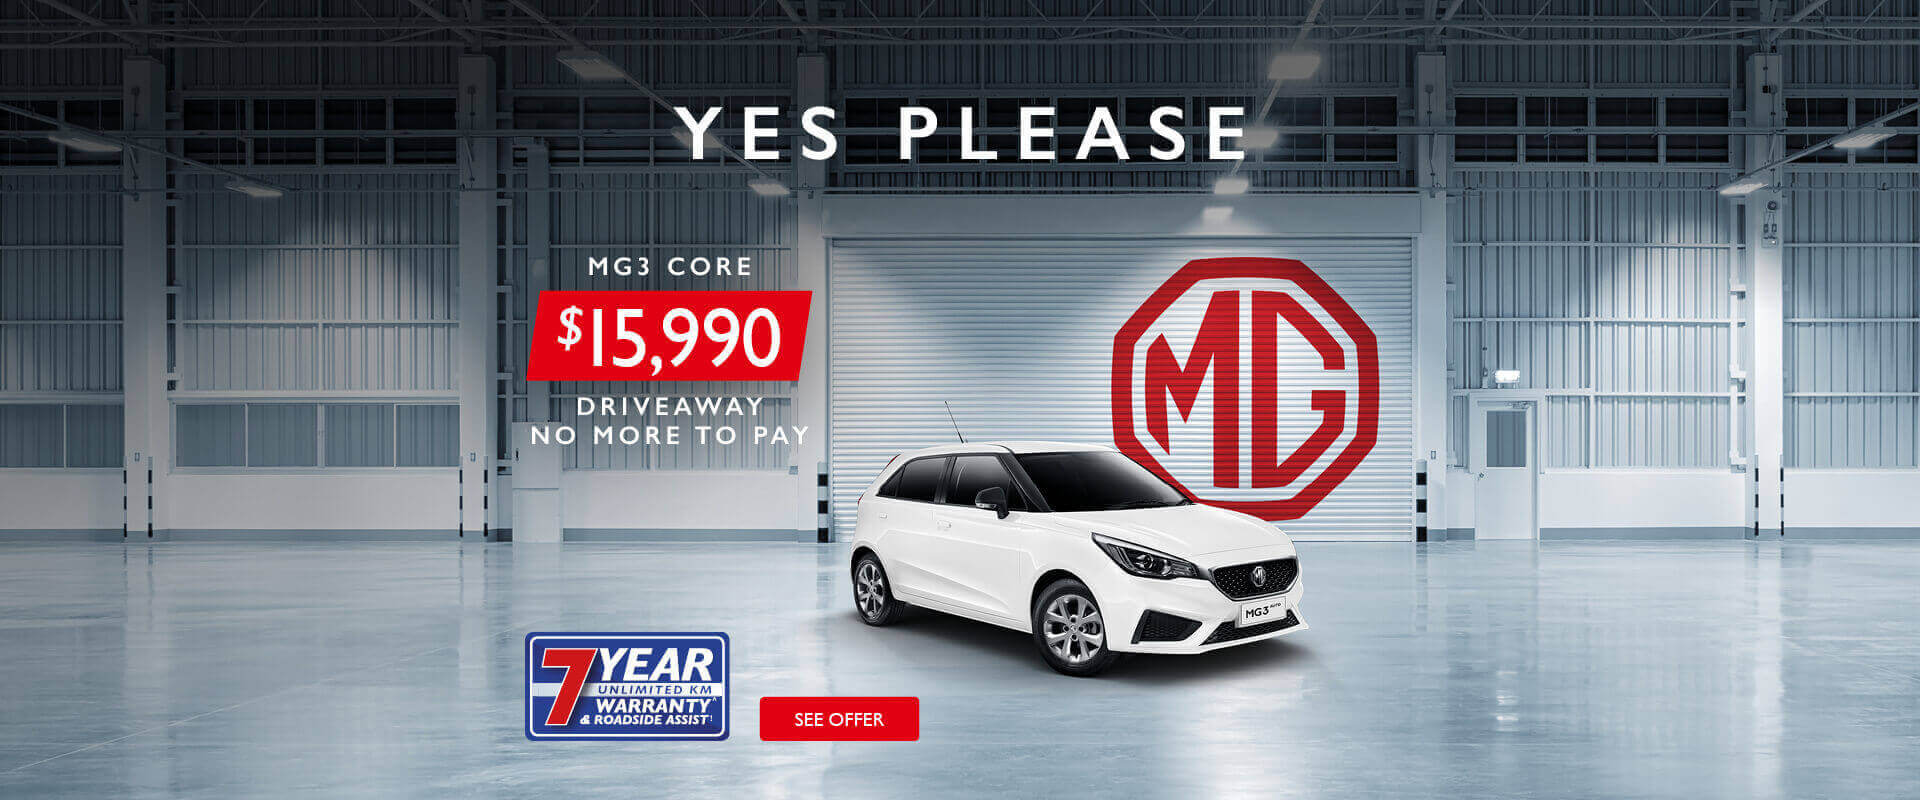 MG - MG3S 'Yes Please' Special Offer